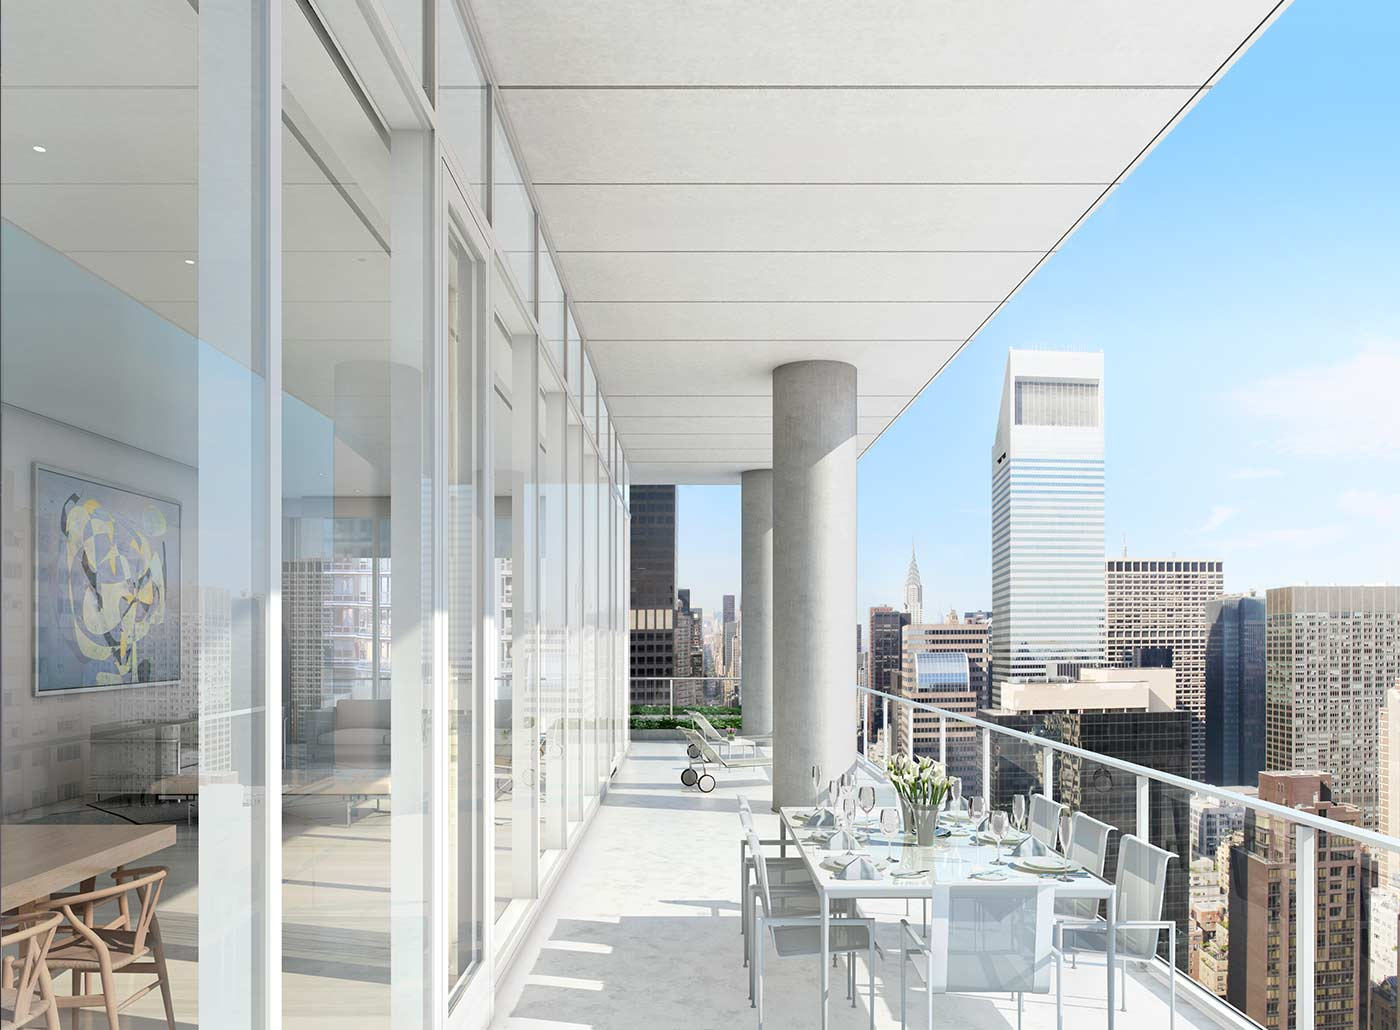 Miami comes to NYC with 200 East 59th Street